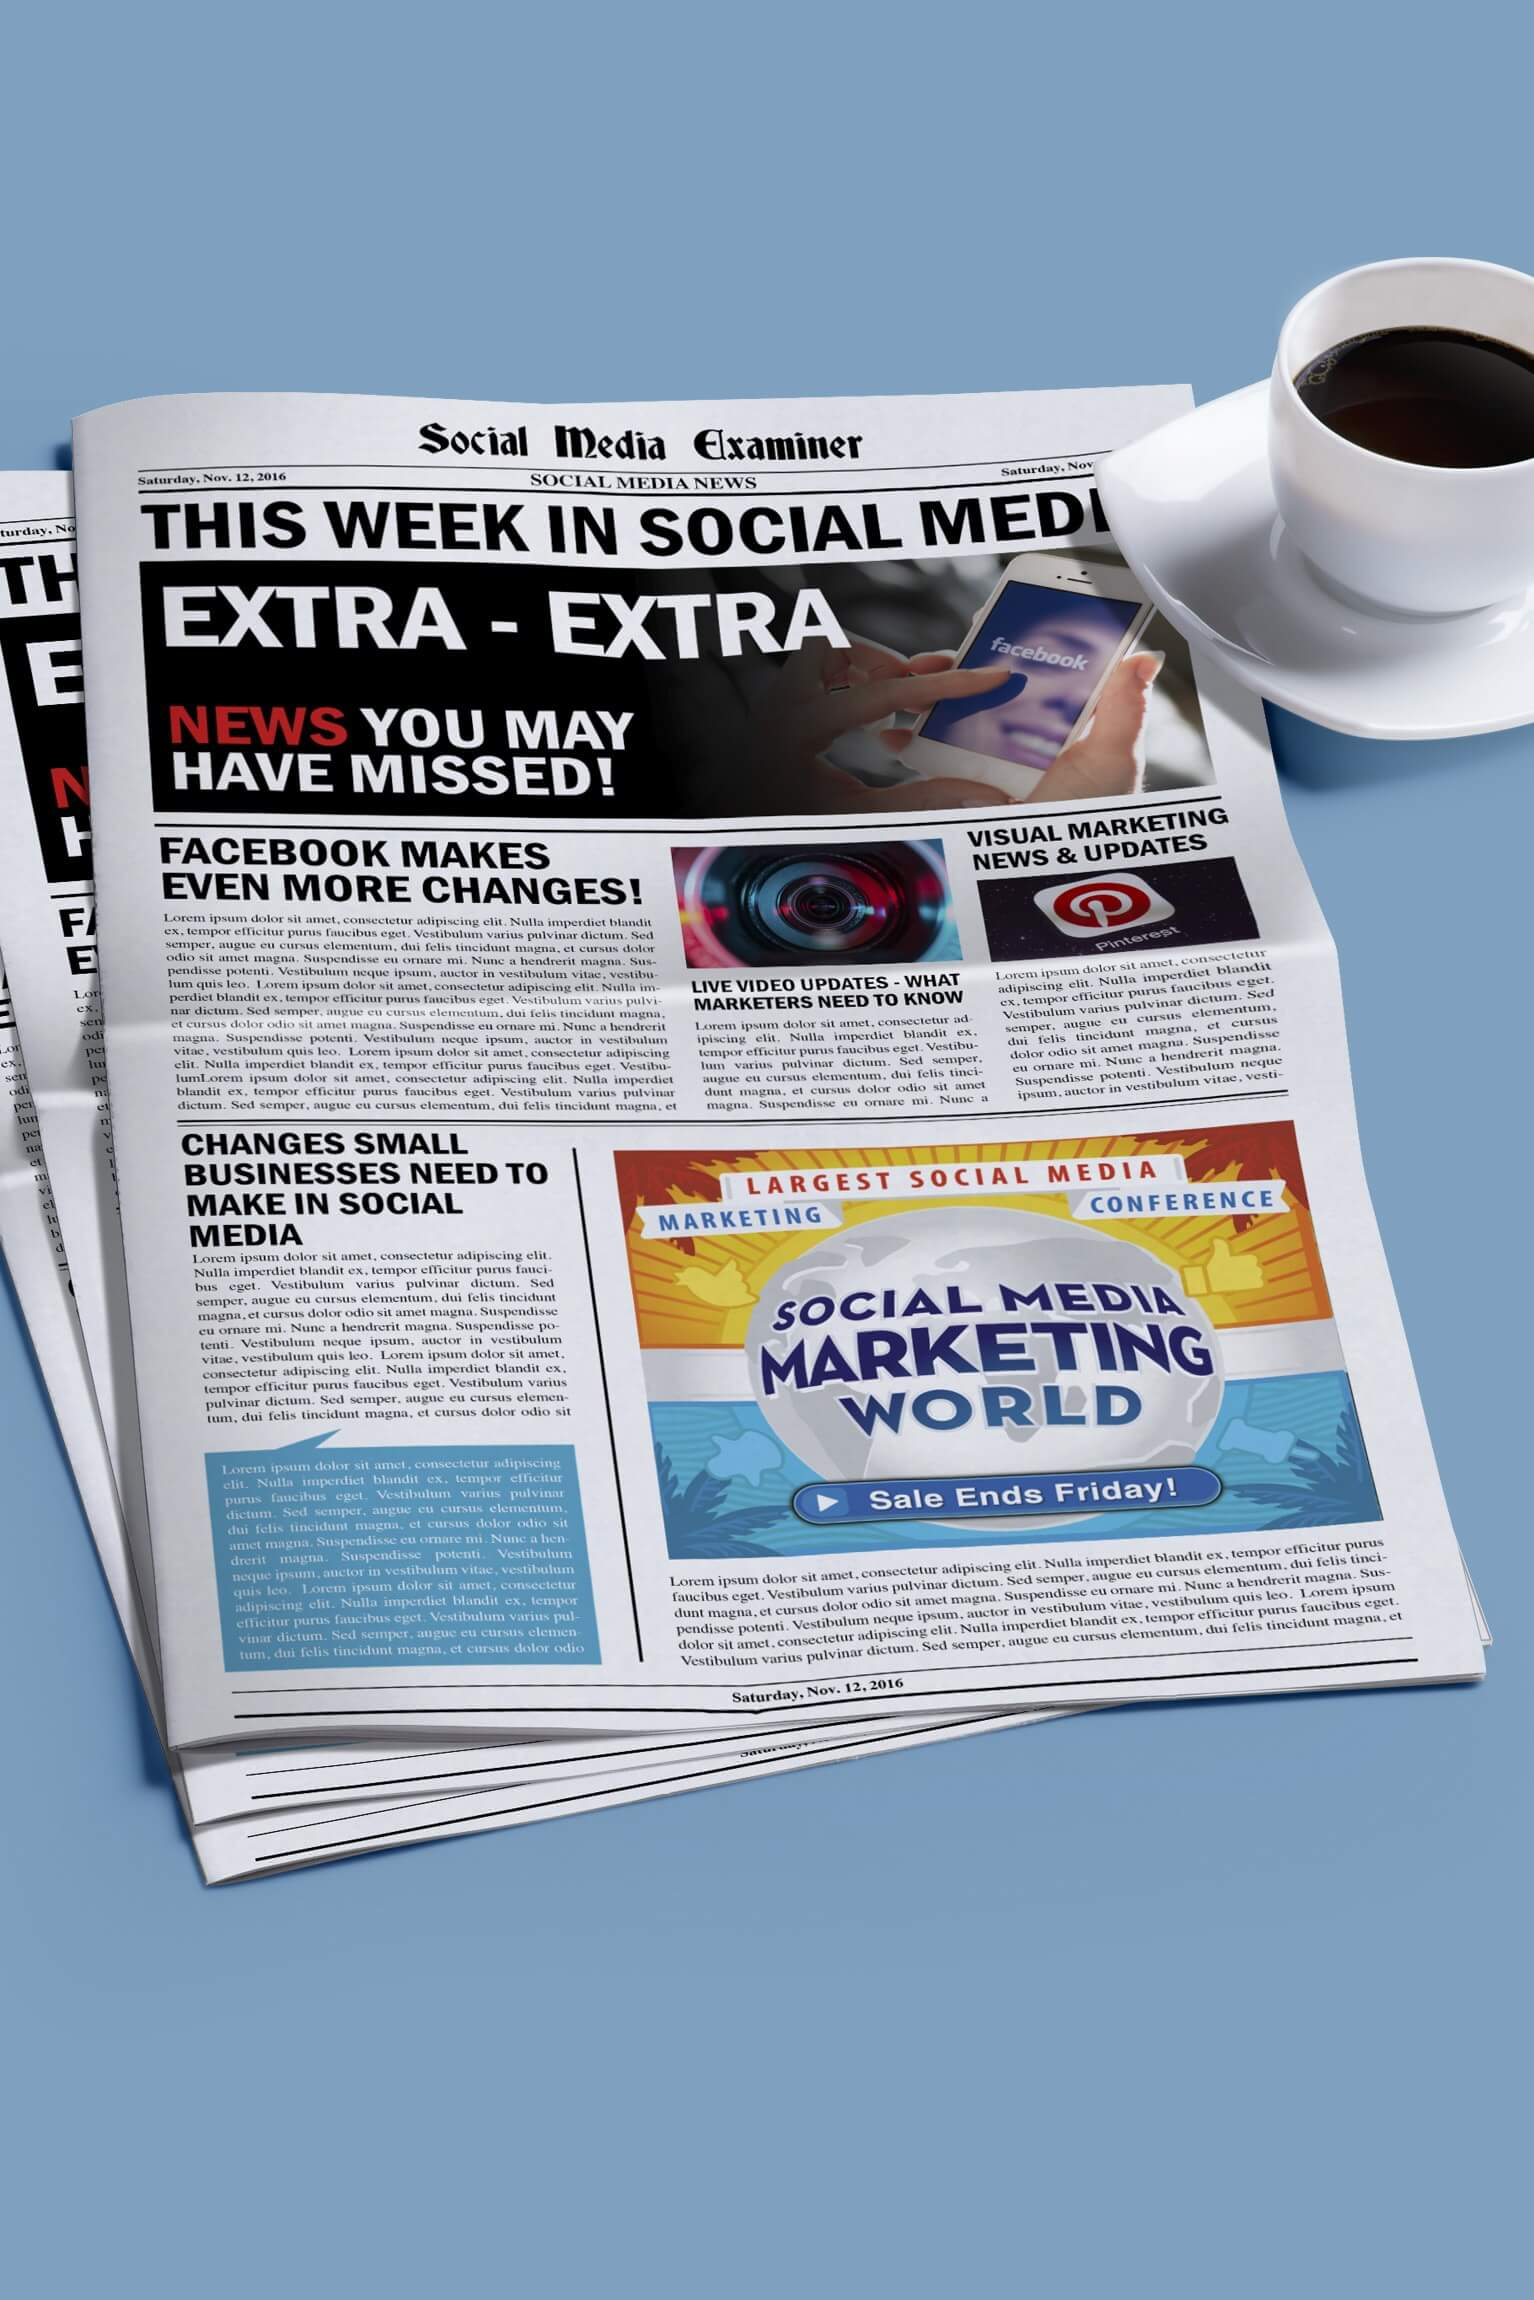 New Features for Instagram Stories and other social media news for Nov. 12, 2016.